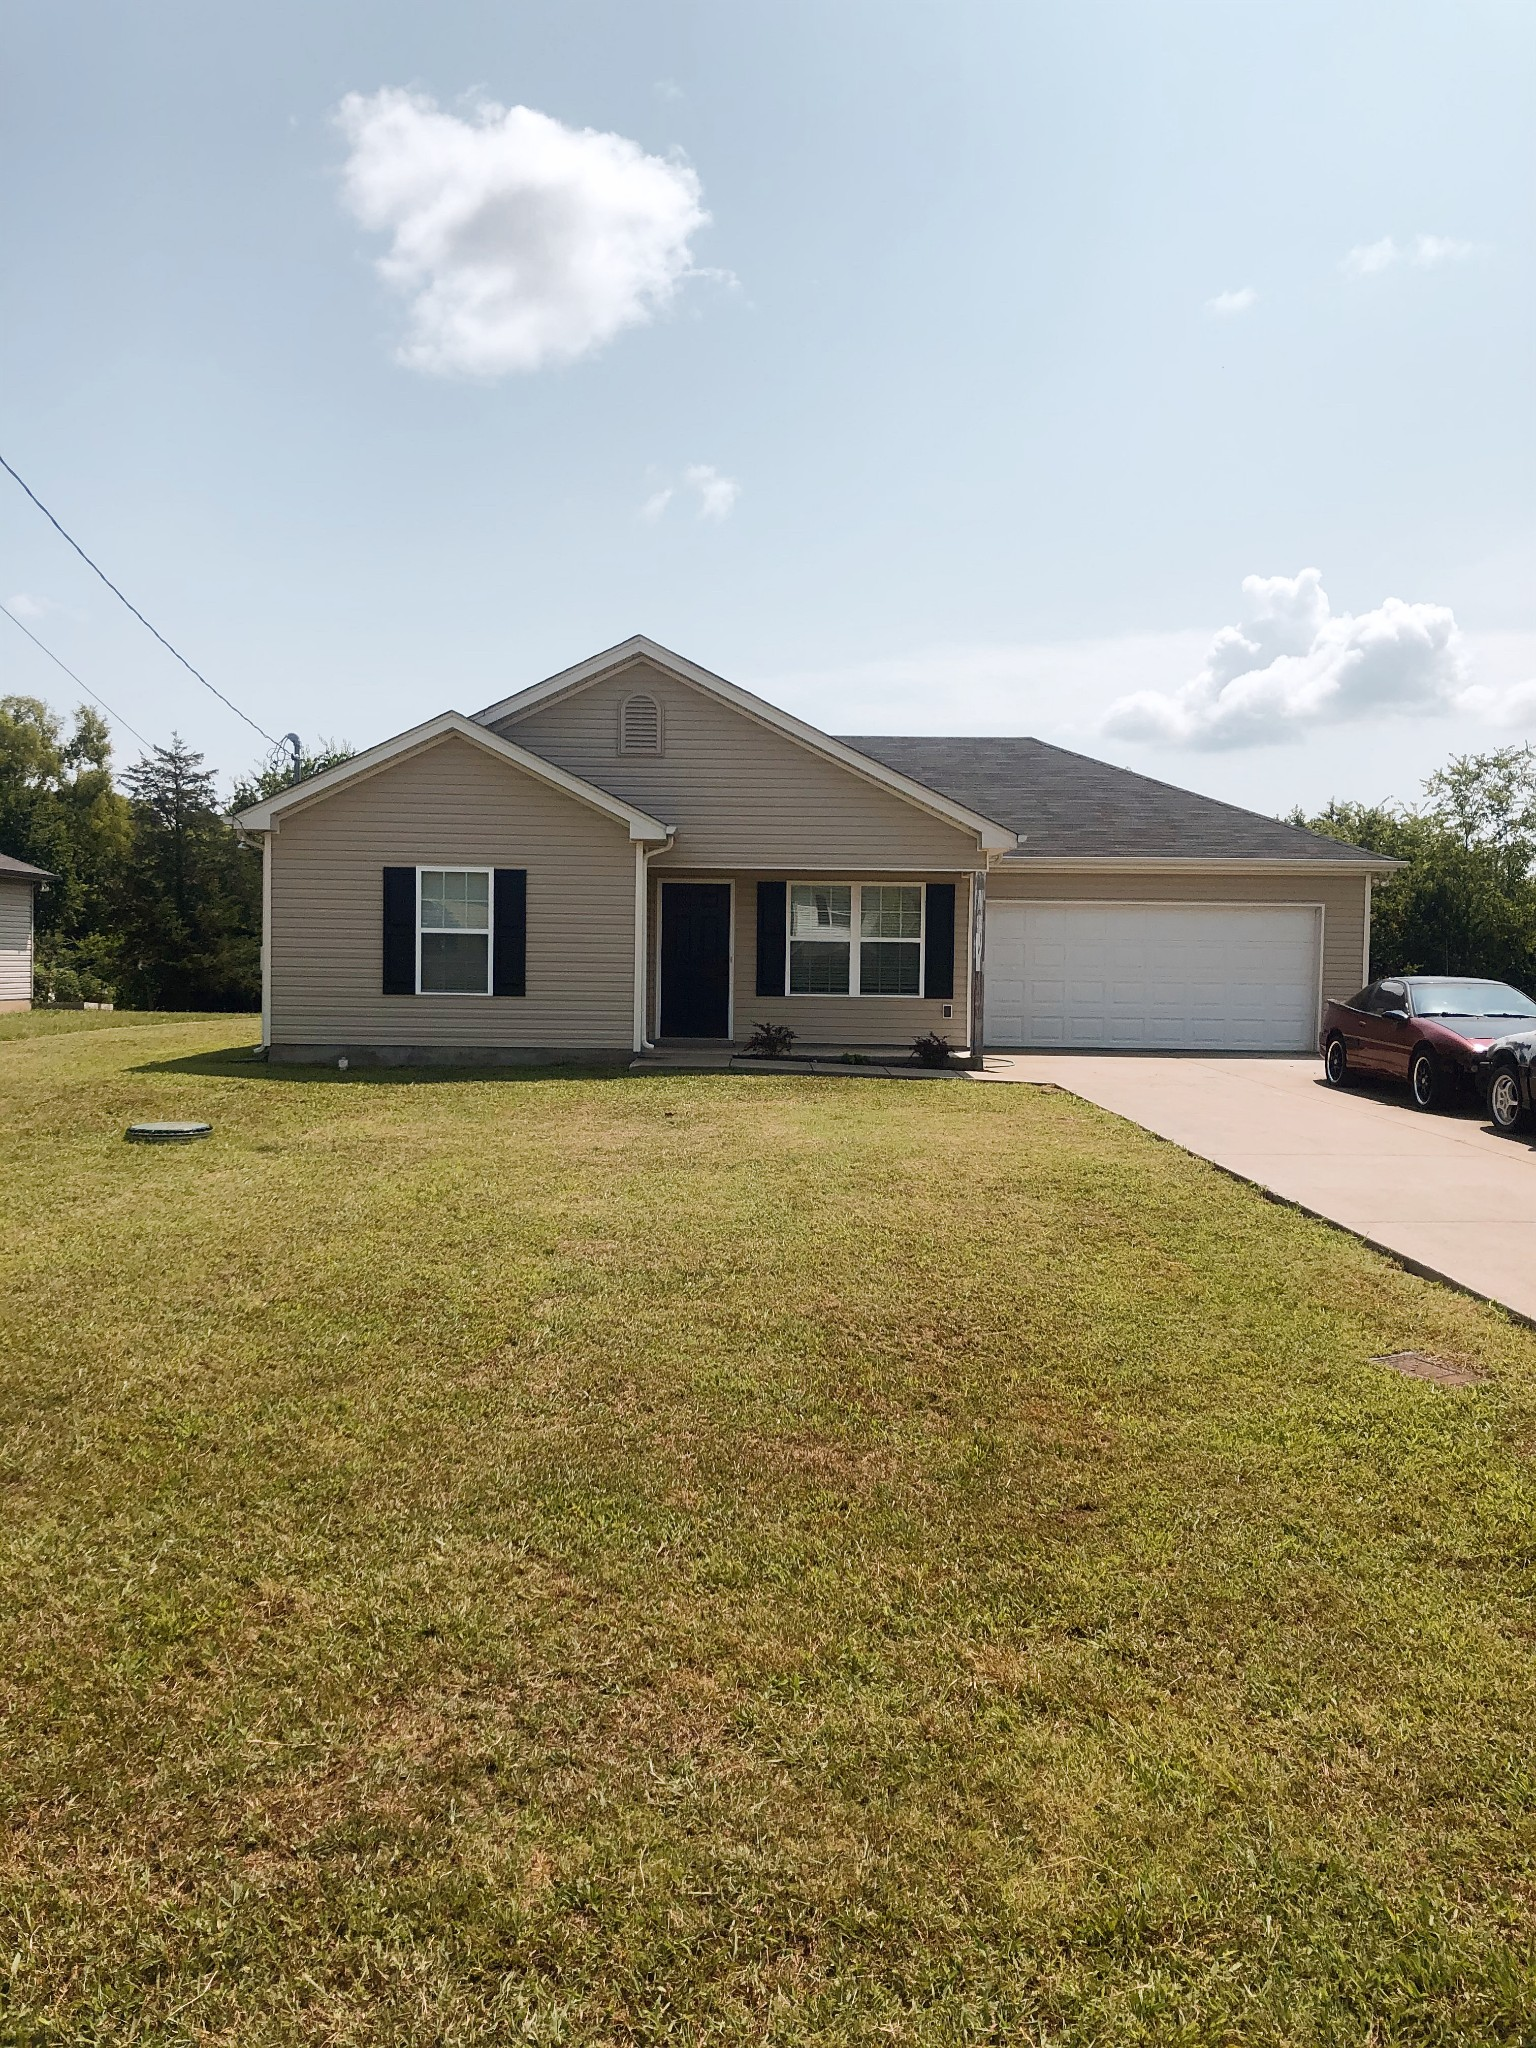 MOTIVATED SELLER! Seller relocating and needs to sell home. Home will be available for showings on or after 8/10/21. No early showings. Home will have more photos to come. Any site unseen offers will still not allow showings until at least 8/10/21. Washer & Dryer Negotiable.